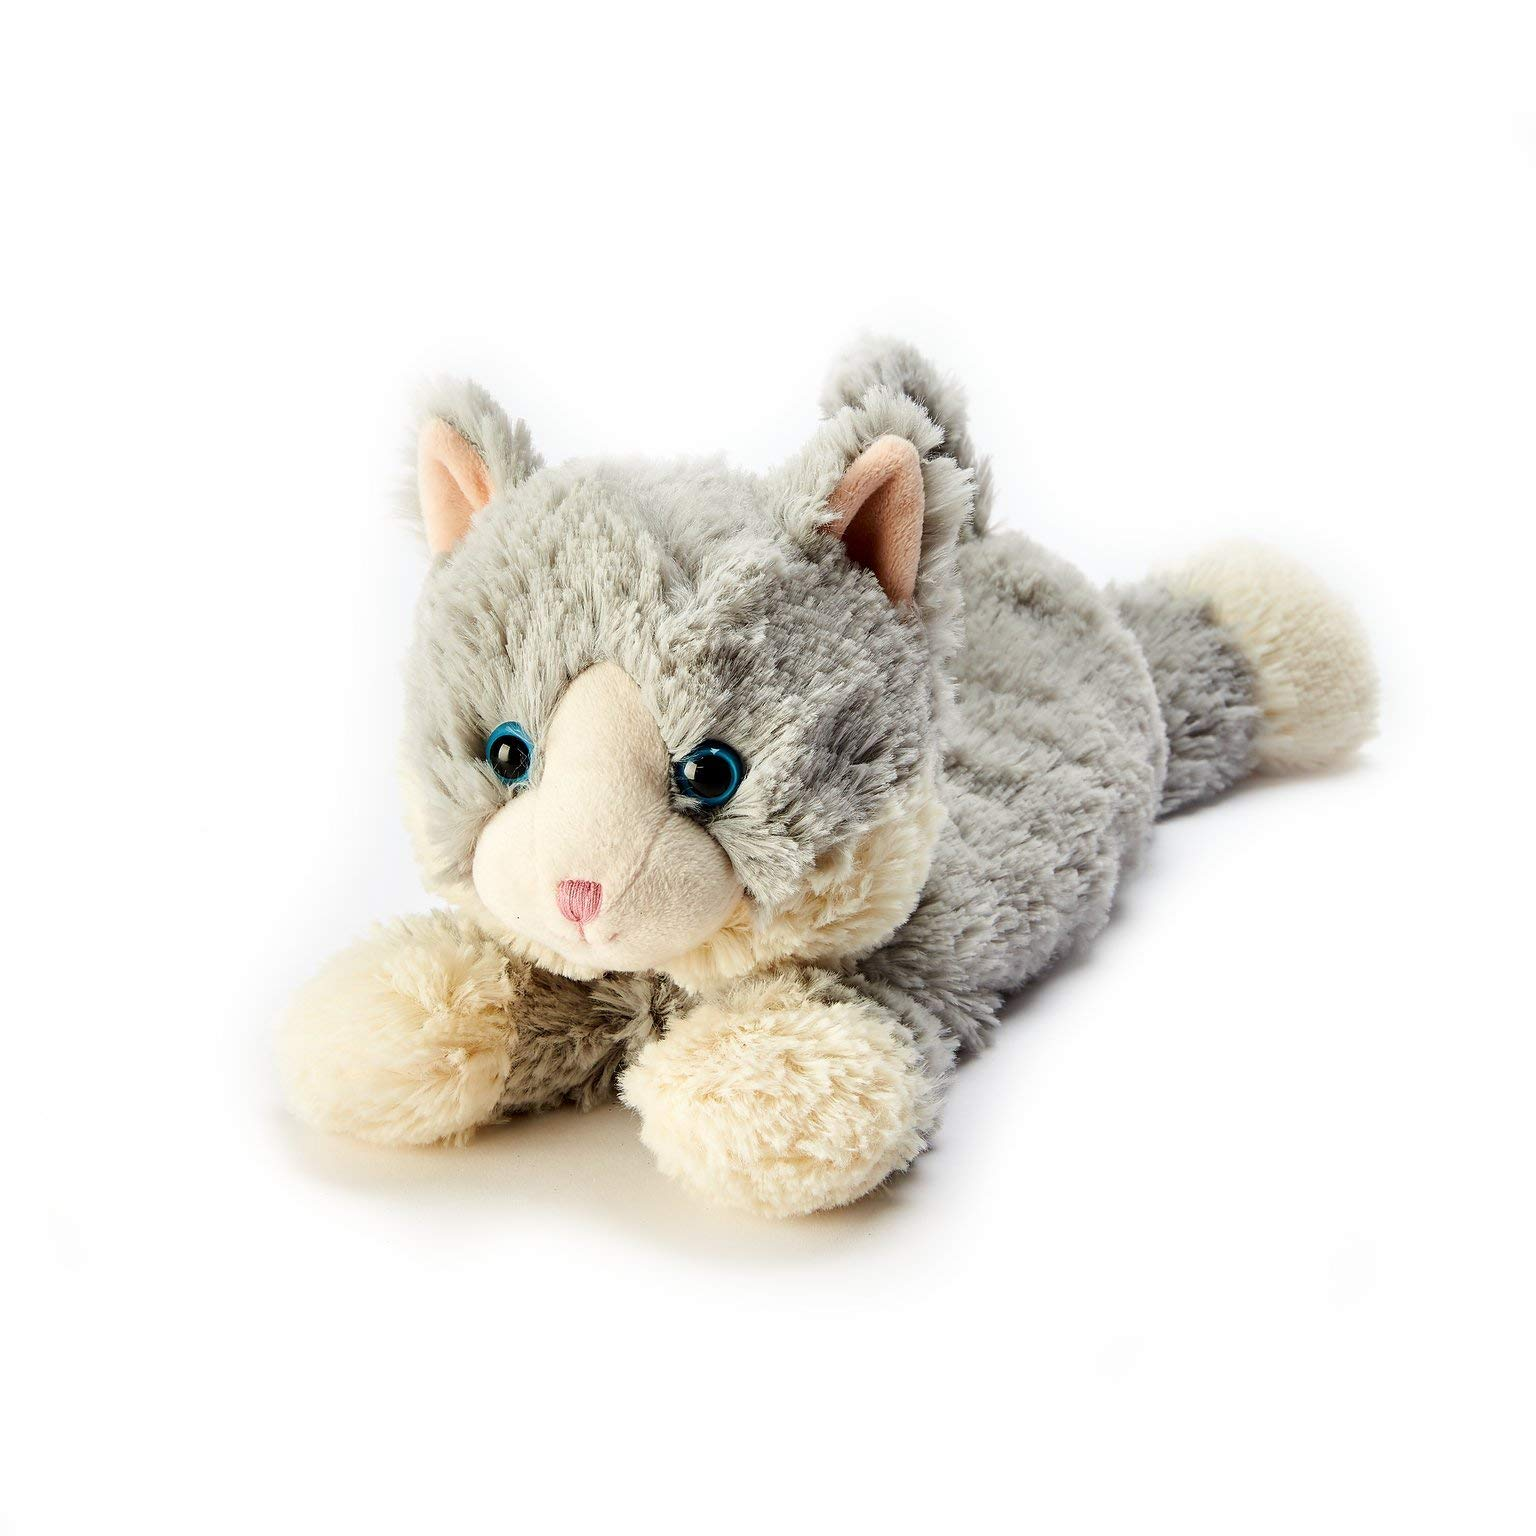 Intelex Warmies Microwavable French Lavender Scented Plush Laying Down Cat by Intelex